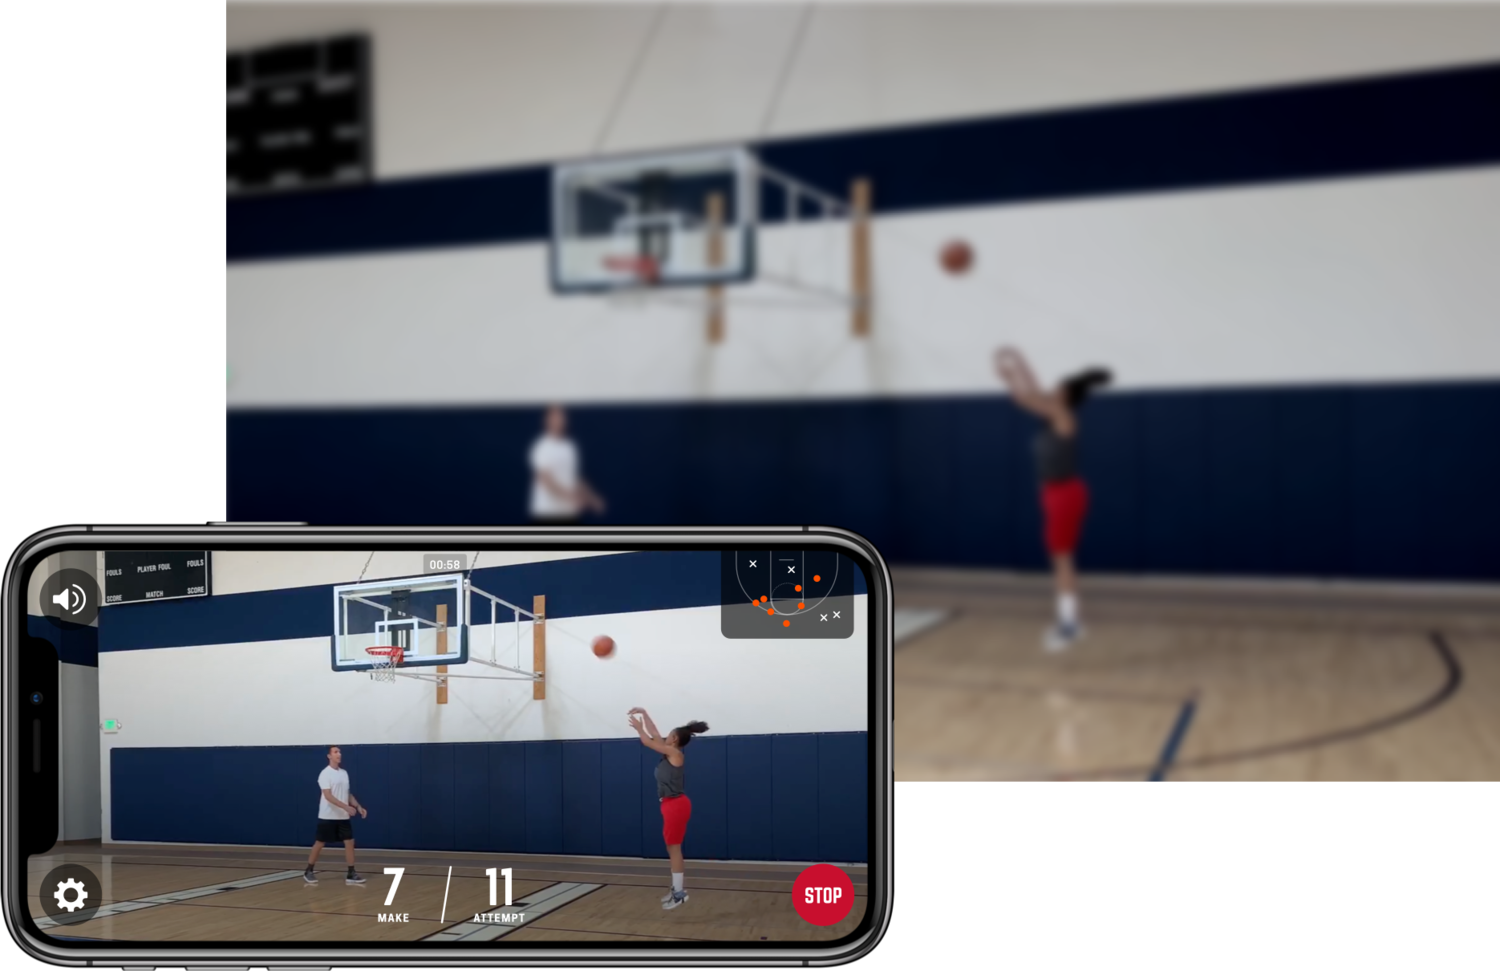 homecourt basketball shot tracker app